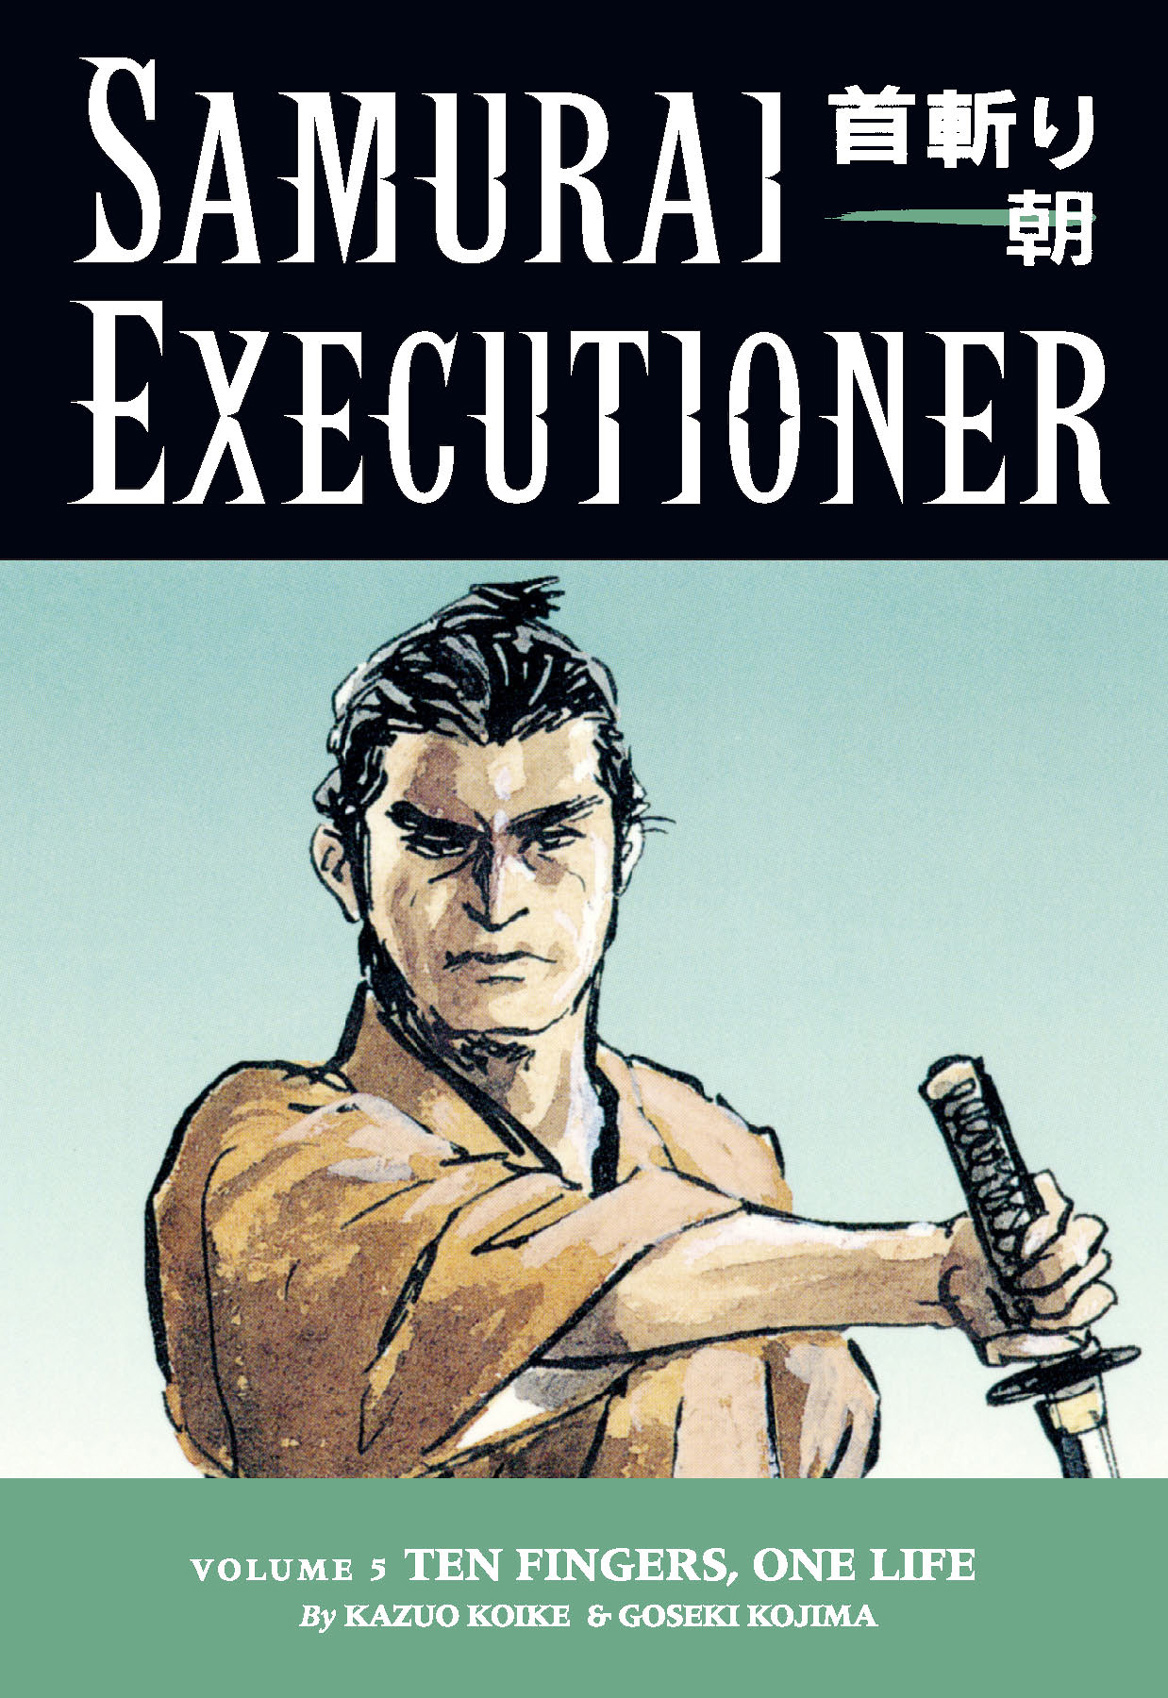 Samurai Executioner Volume 5